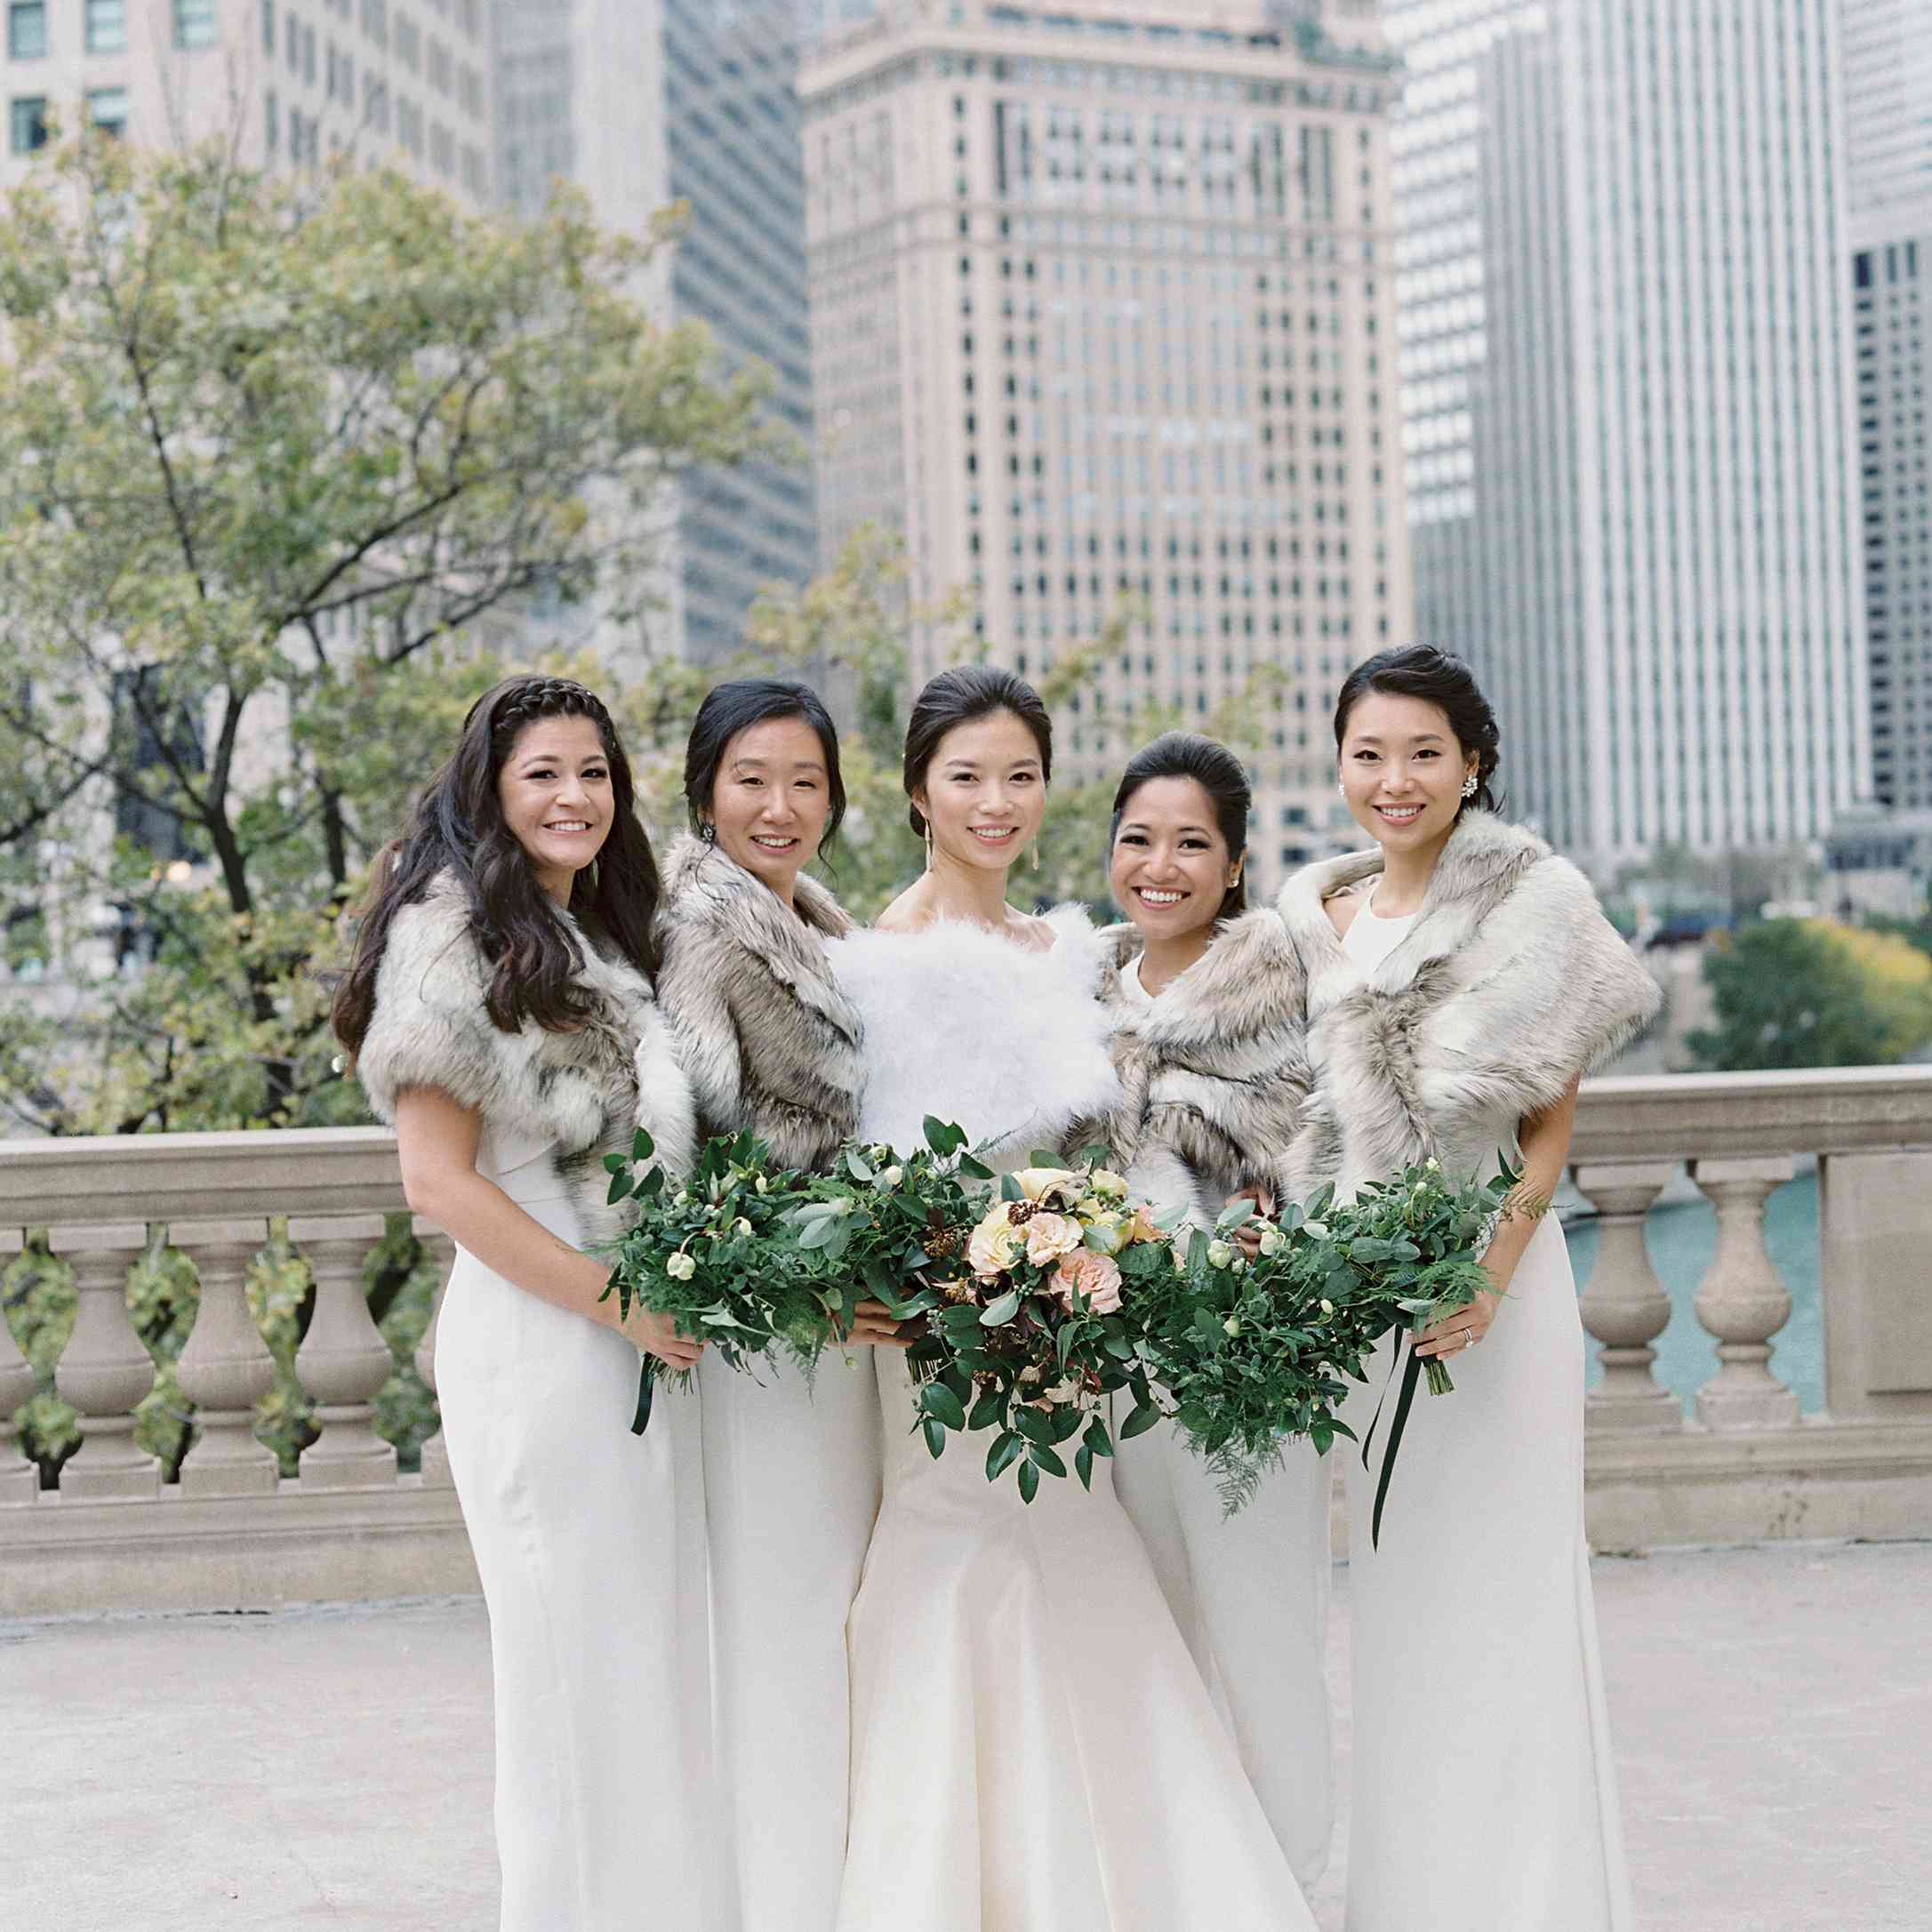 brides and bridesmaids in all white and faux fur wraps